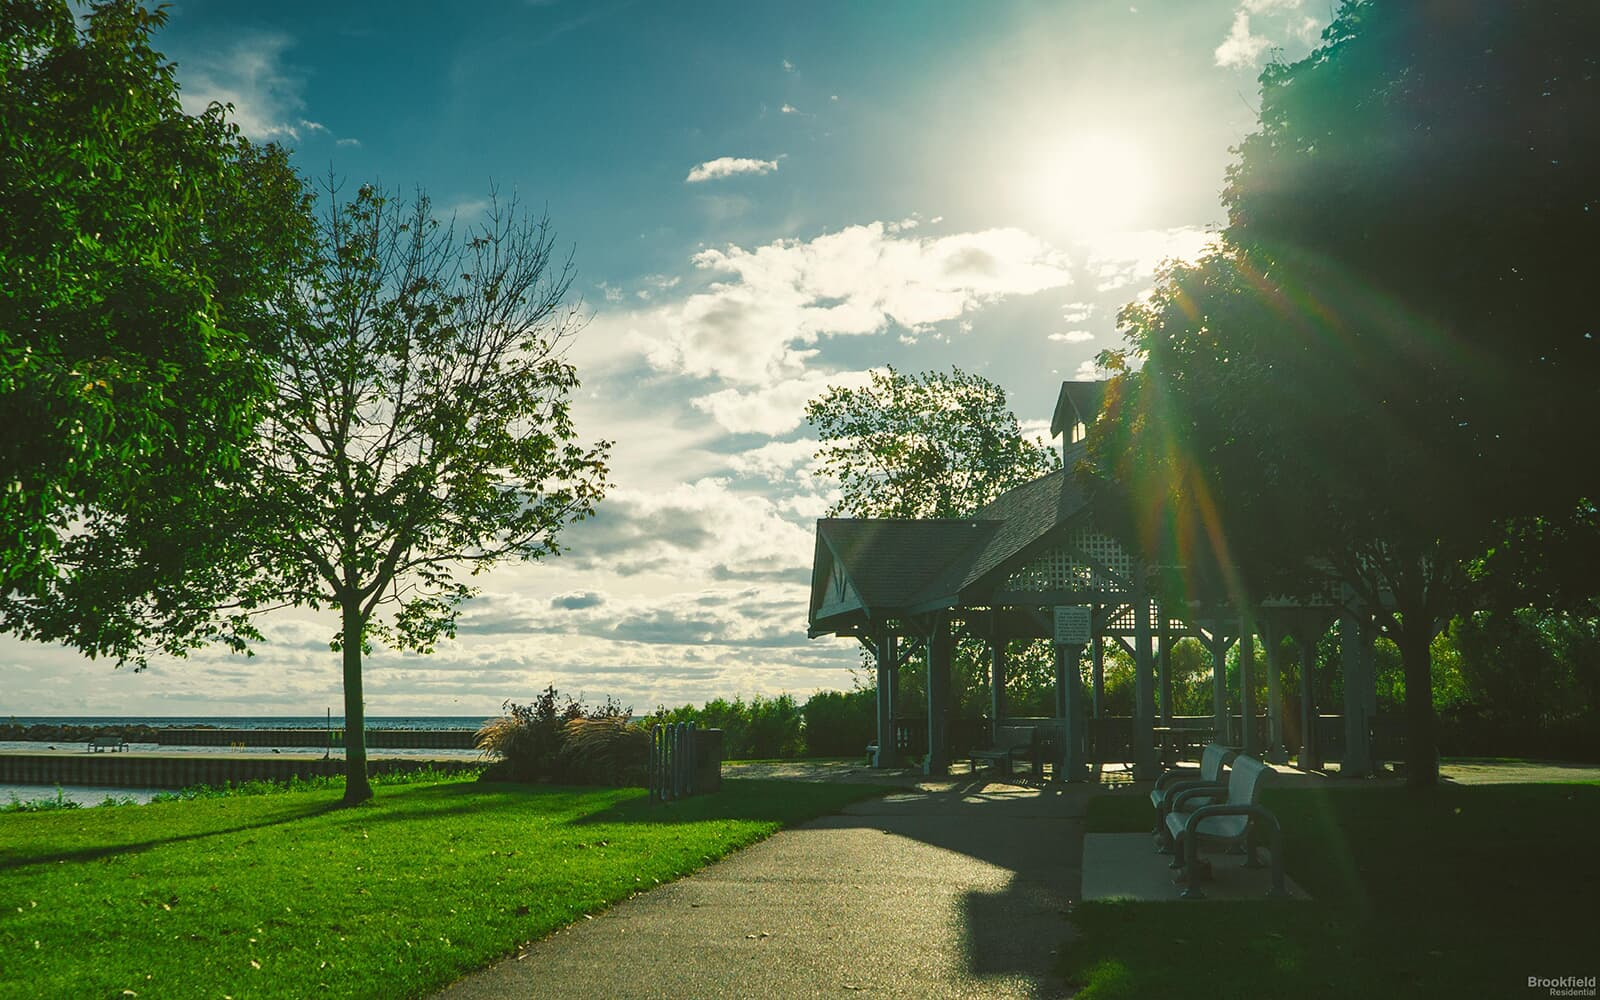 Lakeshore With Trees and Gazebo in Whitby, ON